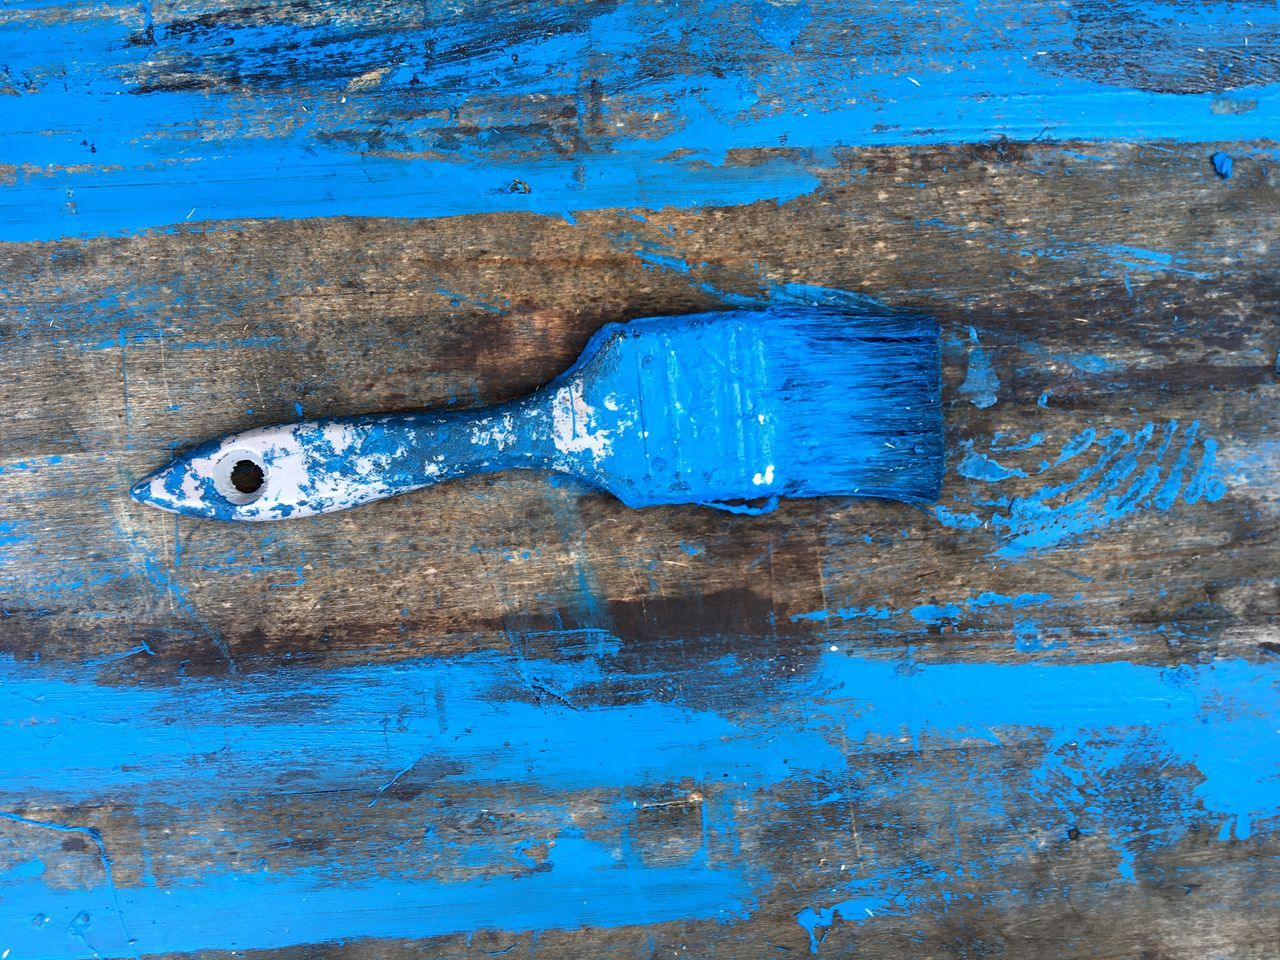 Blue Weathered Rough Metal Textured  Rusty Paint Backgrounds Full Frame No People Close-up Outdoors Day Colors Paint Craft Brush